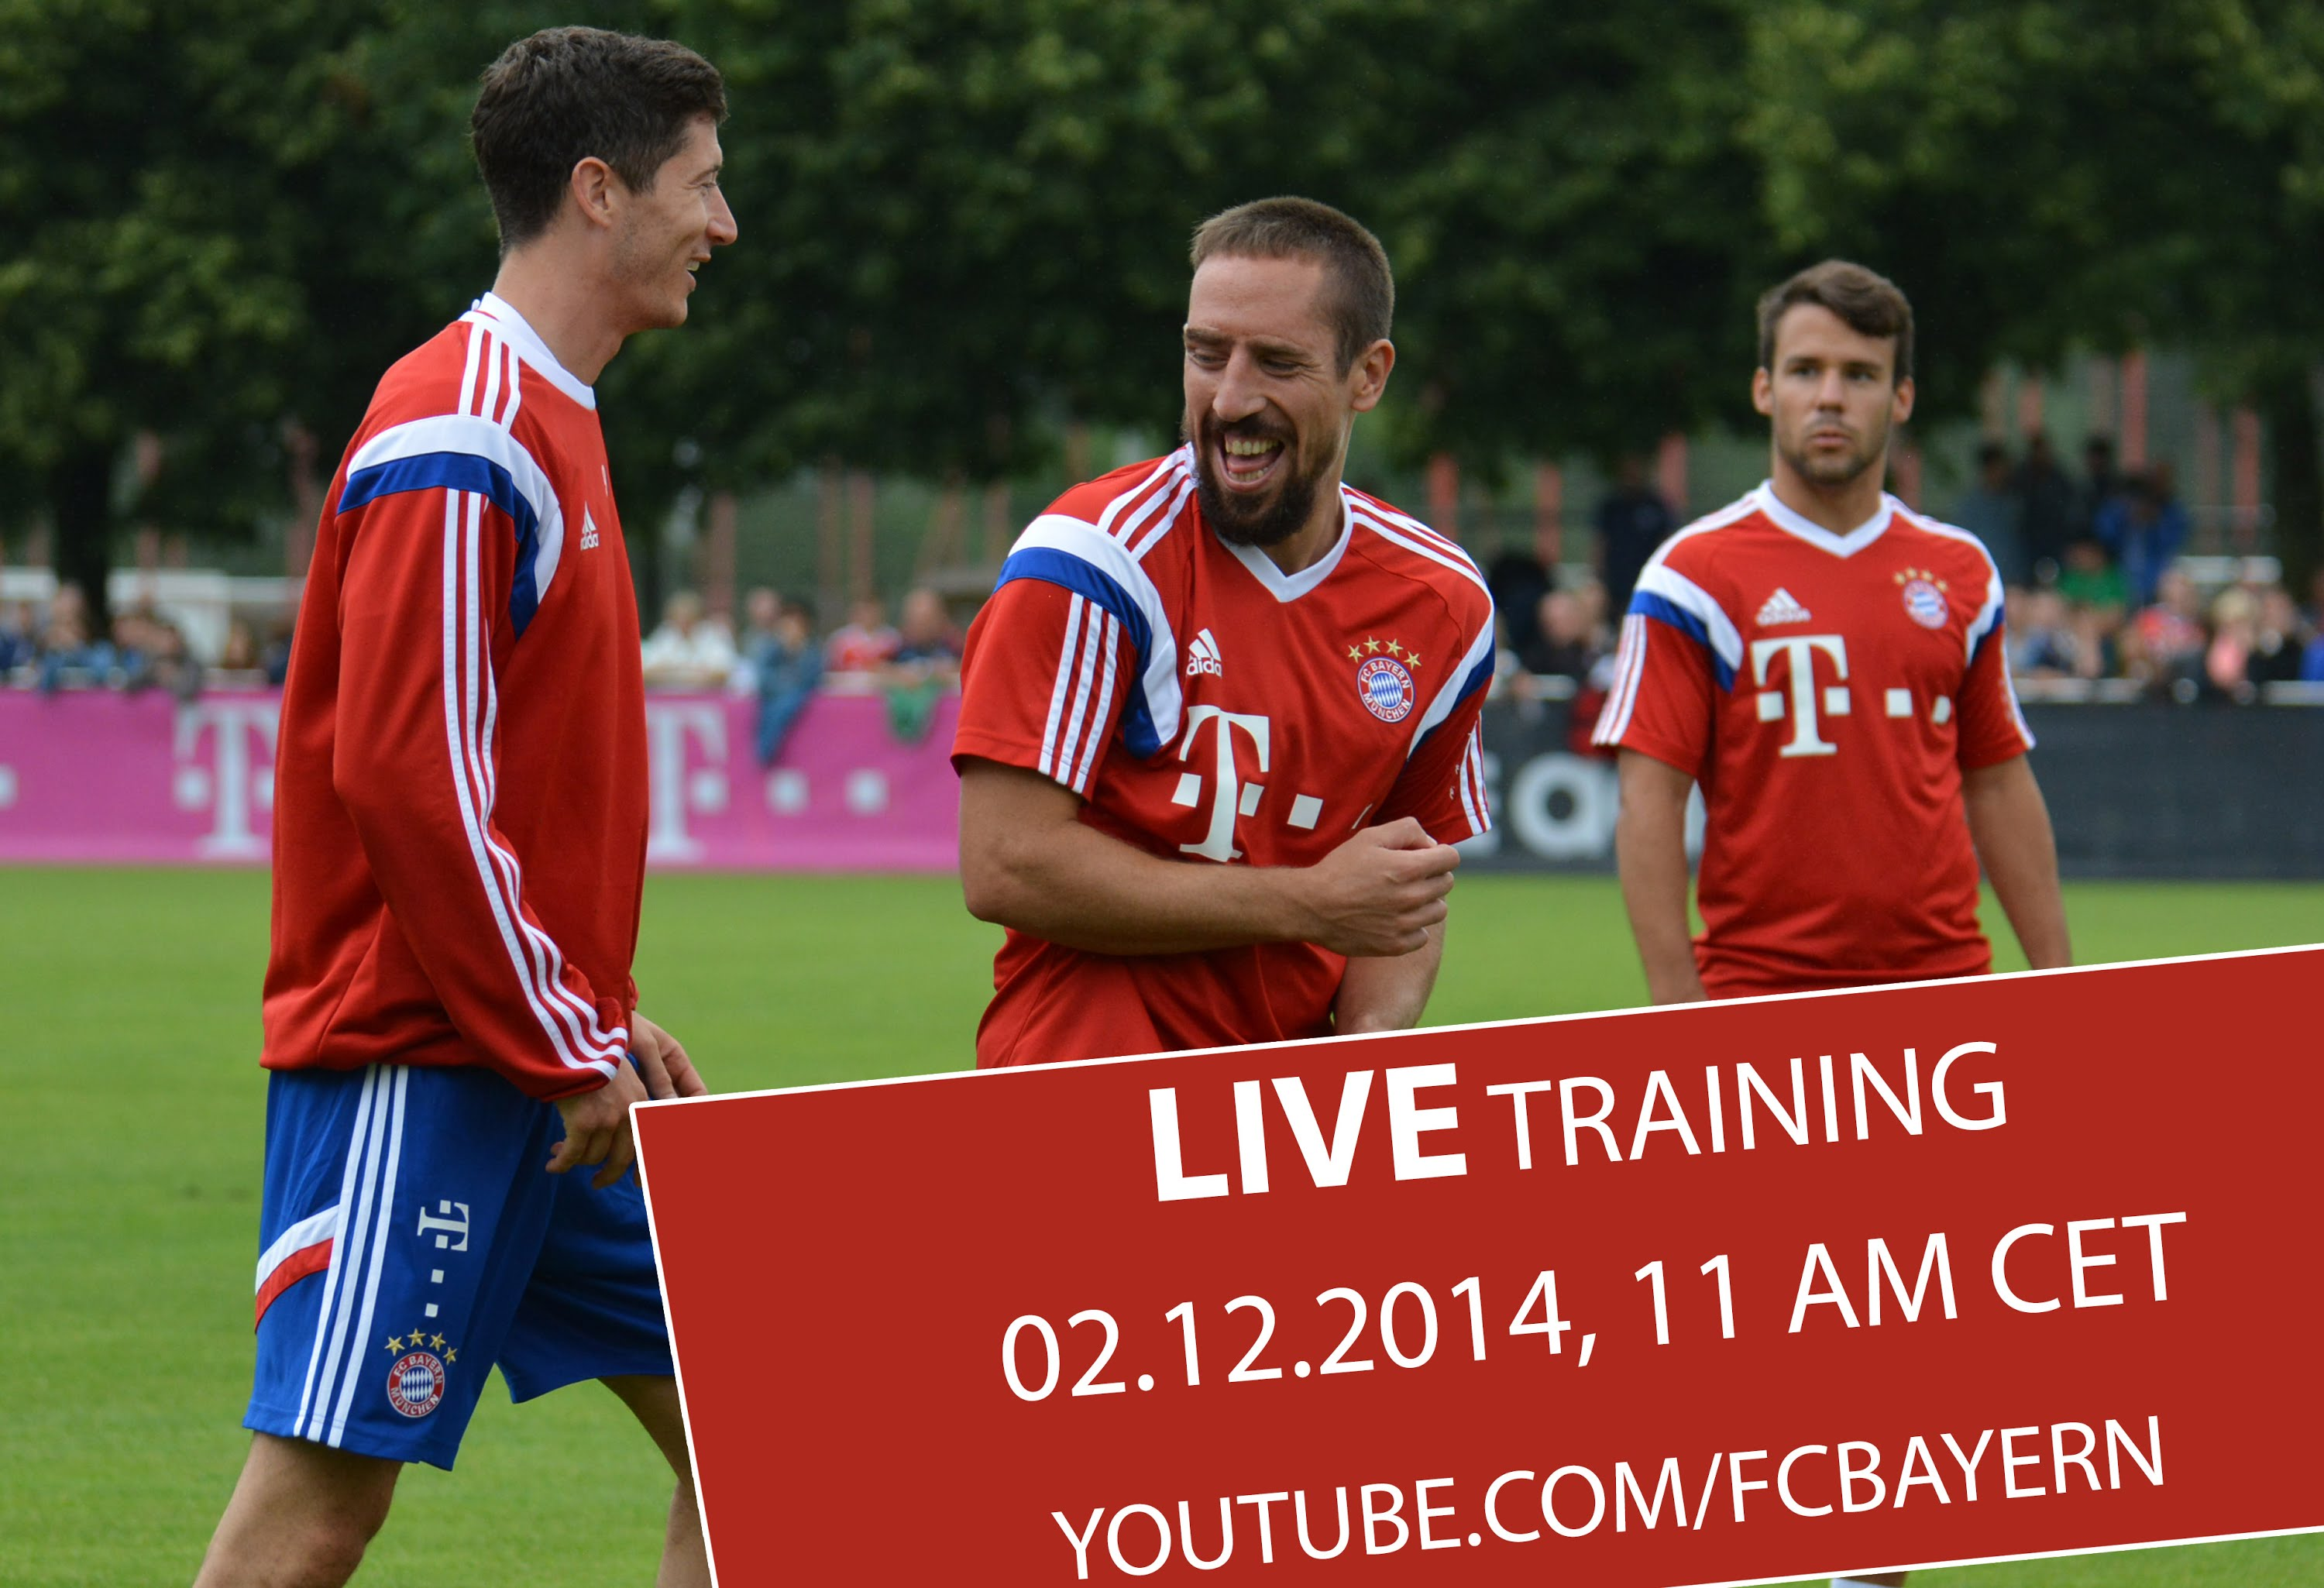 FC Bayern Live Training - ReLive